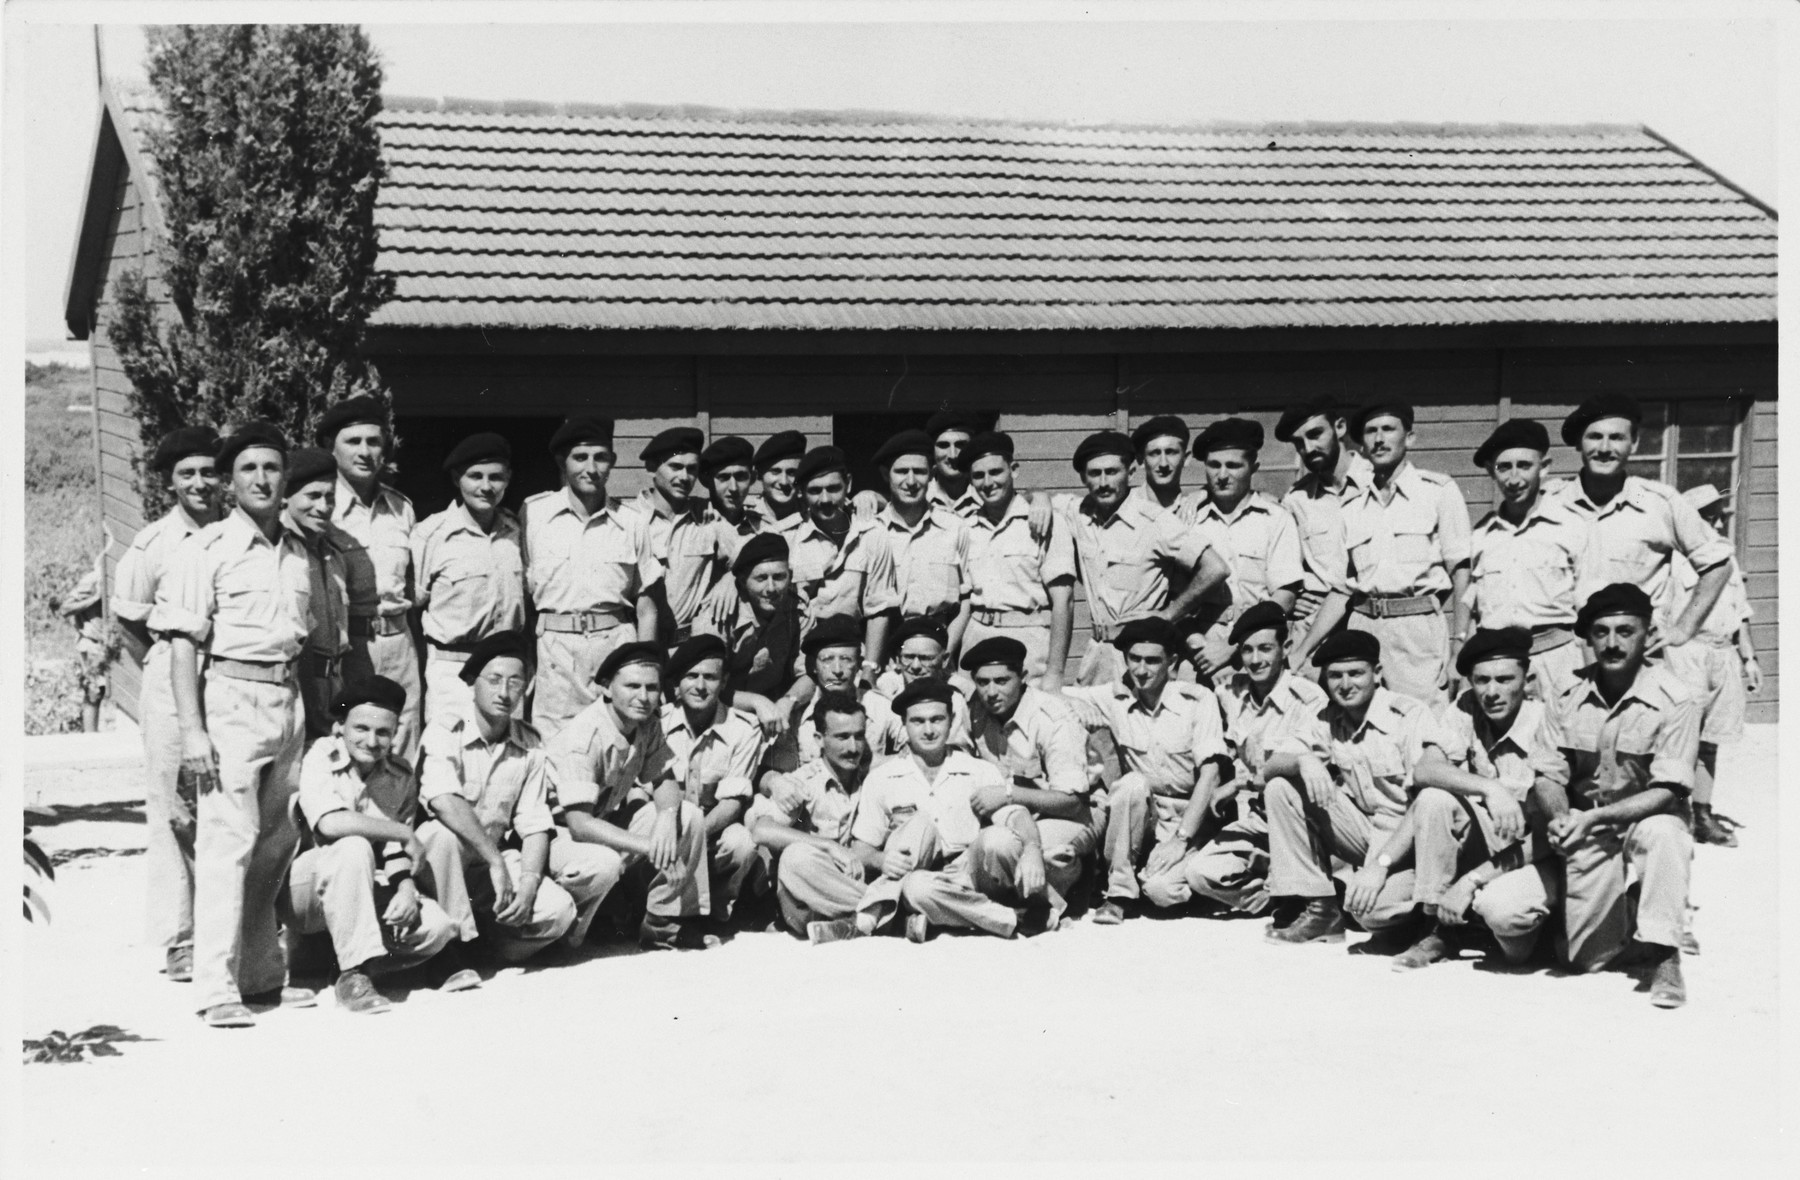 Group portrait of soldiers in a field artillery officers course.  Among those pictured is Shmuel Shalkovsky.